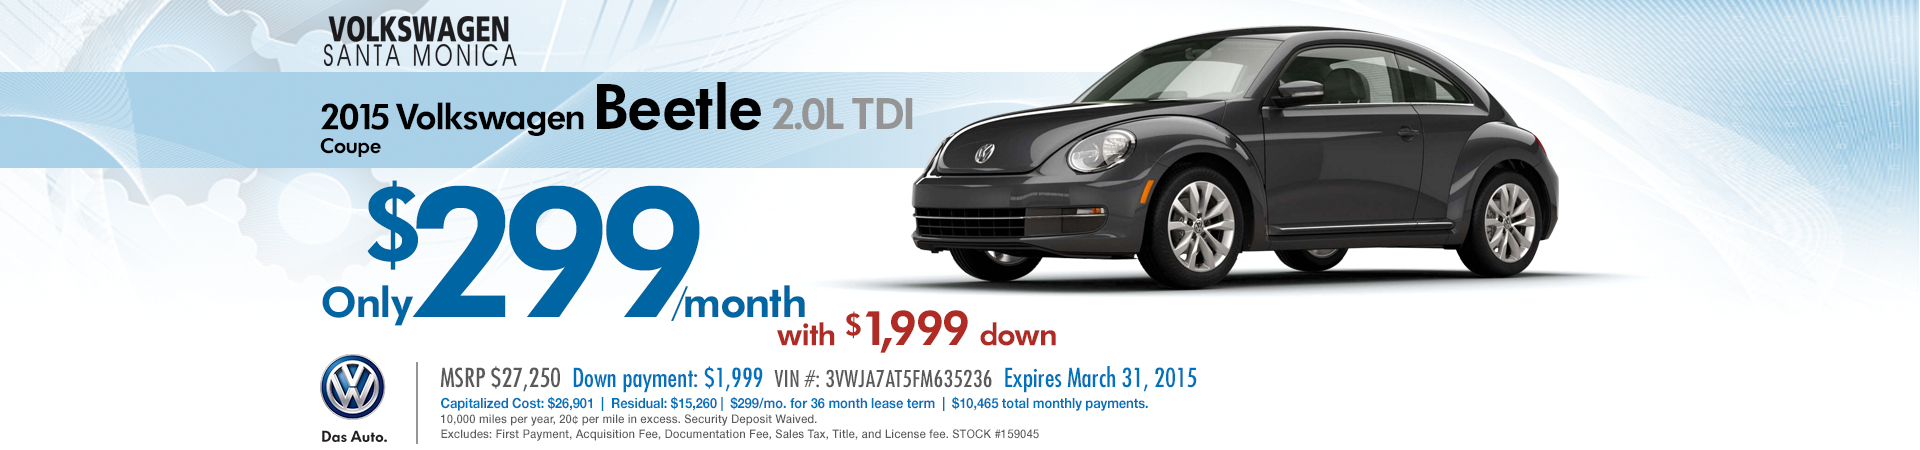 Santa Monica New 2015 VW Beetle 2.0L TDI Special Discount Lease Offer serving the greater Los Angeles Area!